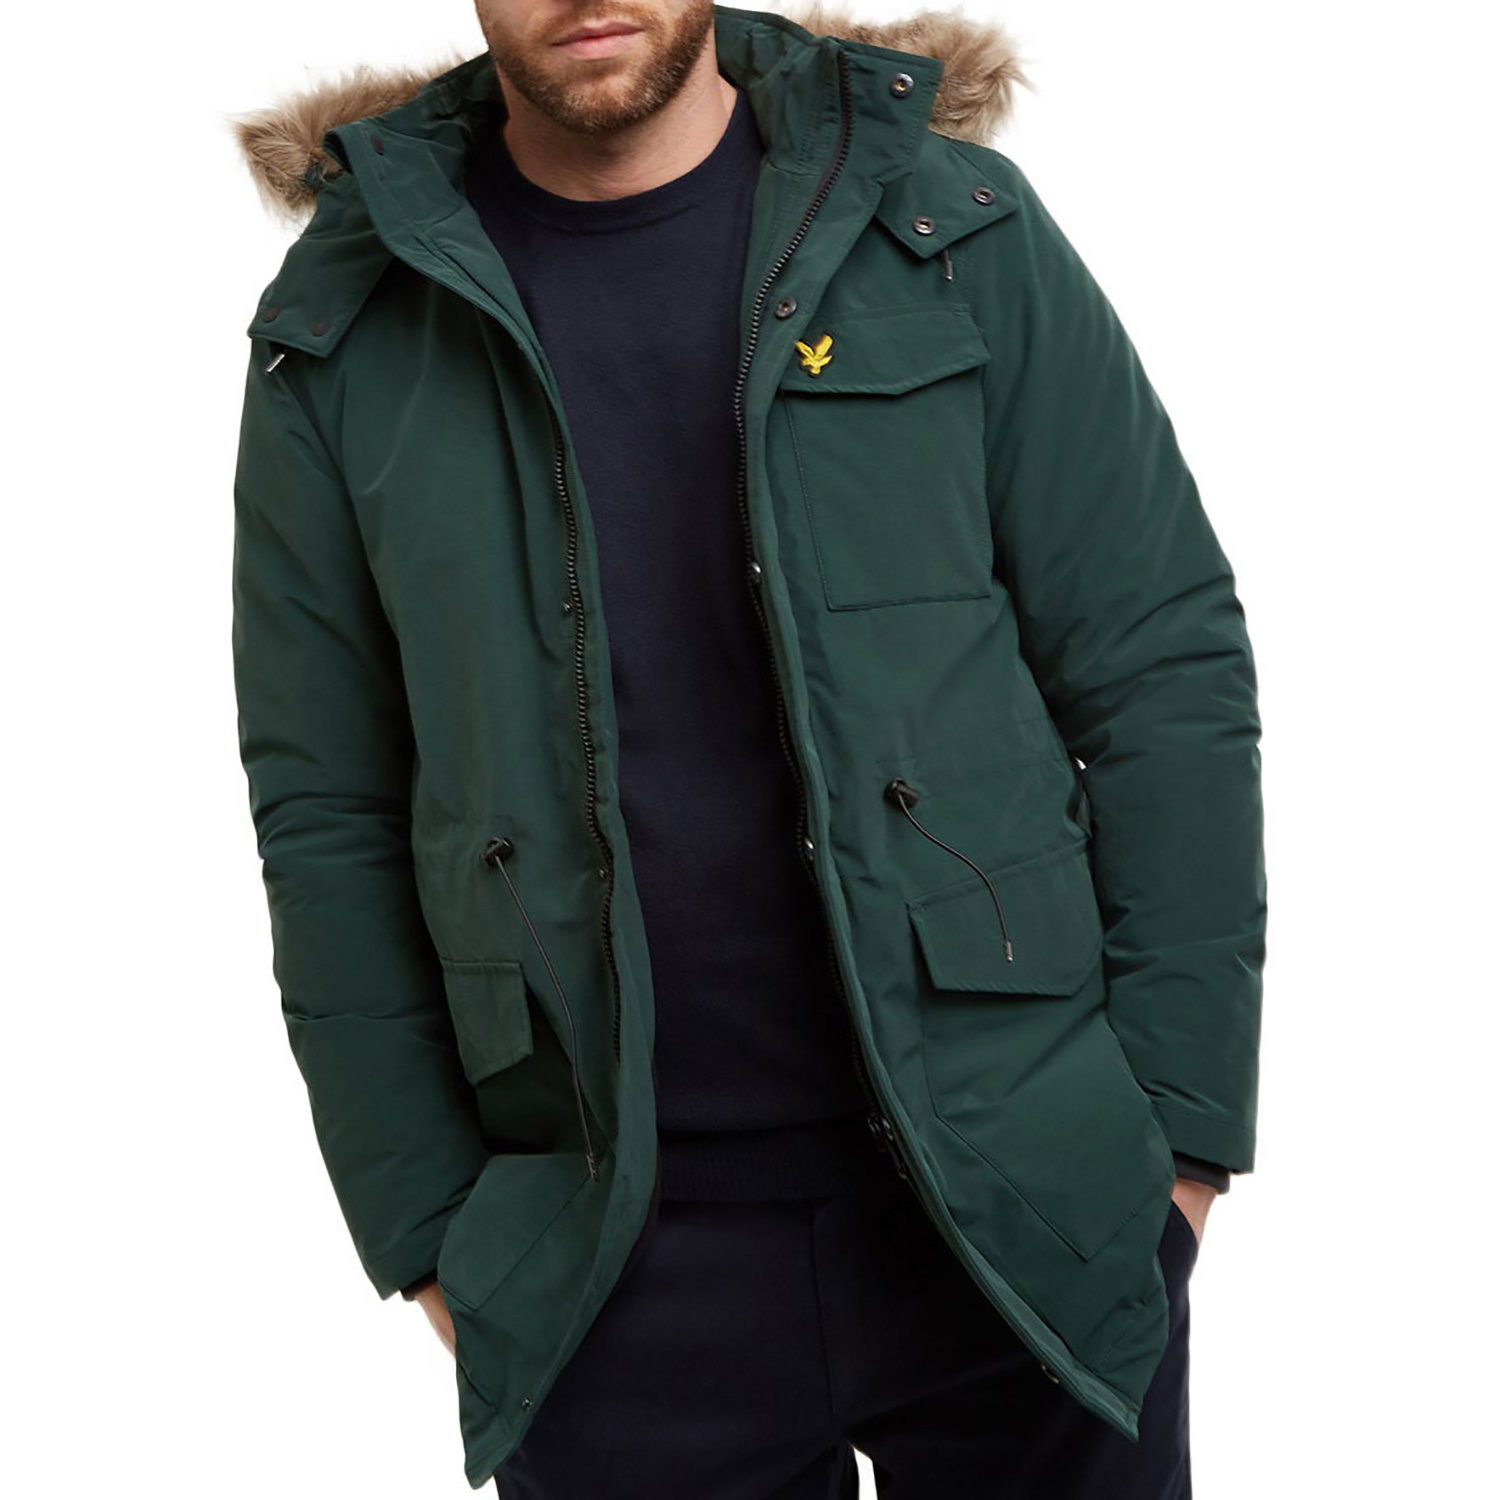 Lyle & Scott Winter Weight Microfleece Jacket Jade Green